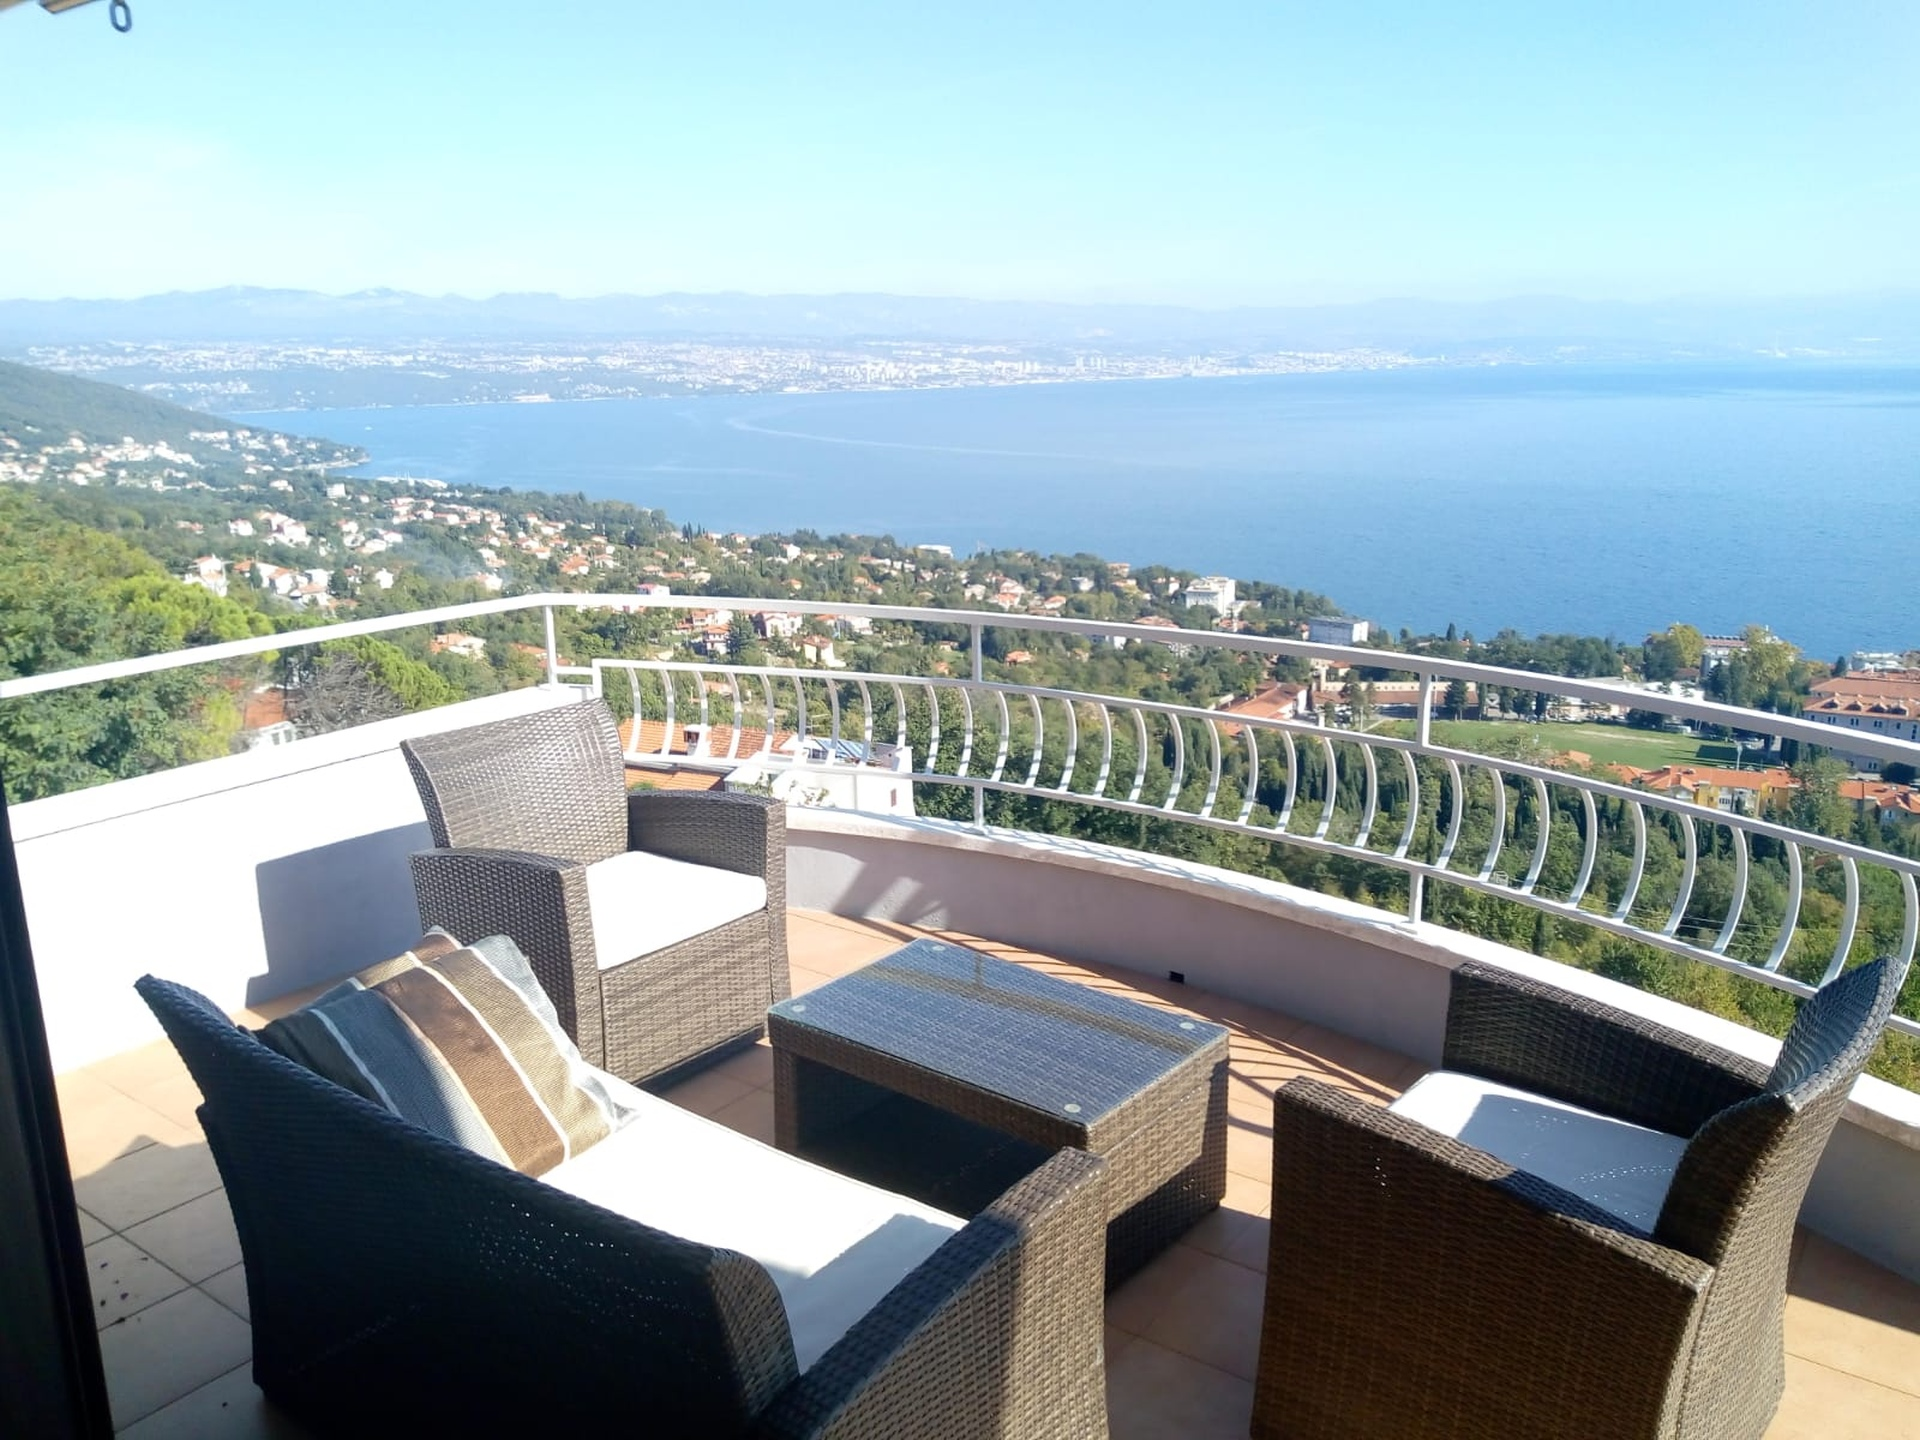 KB-465 Detached house with 5 apartments above Lovran with fantastic sea views, pool and large, well-kept garden.